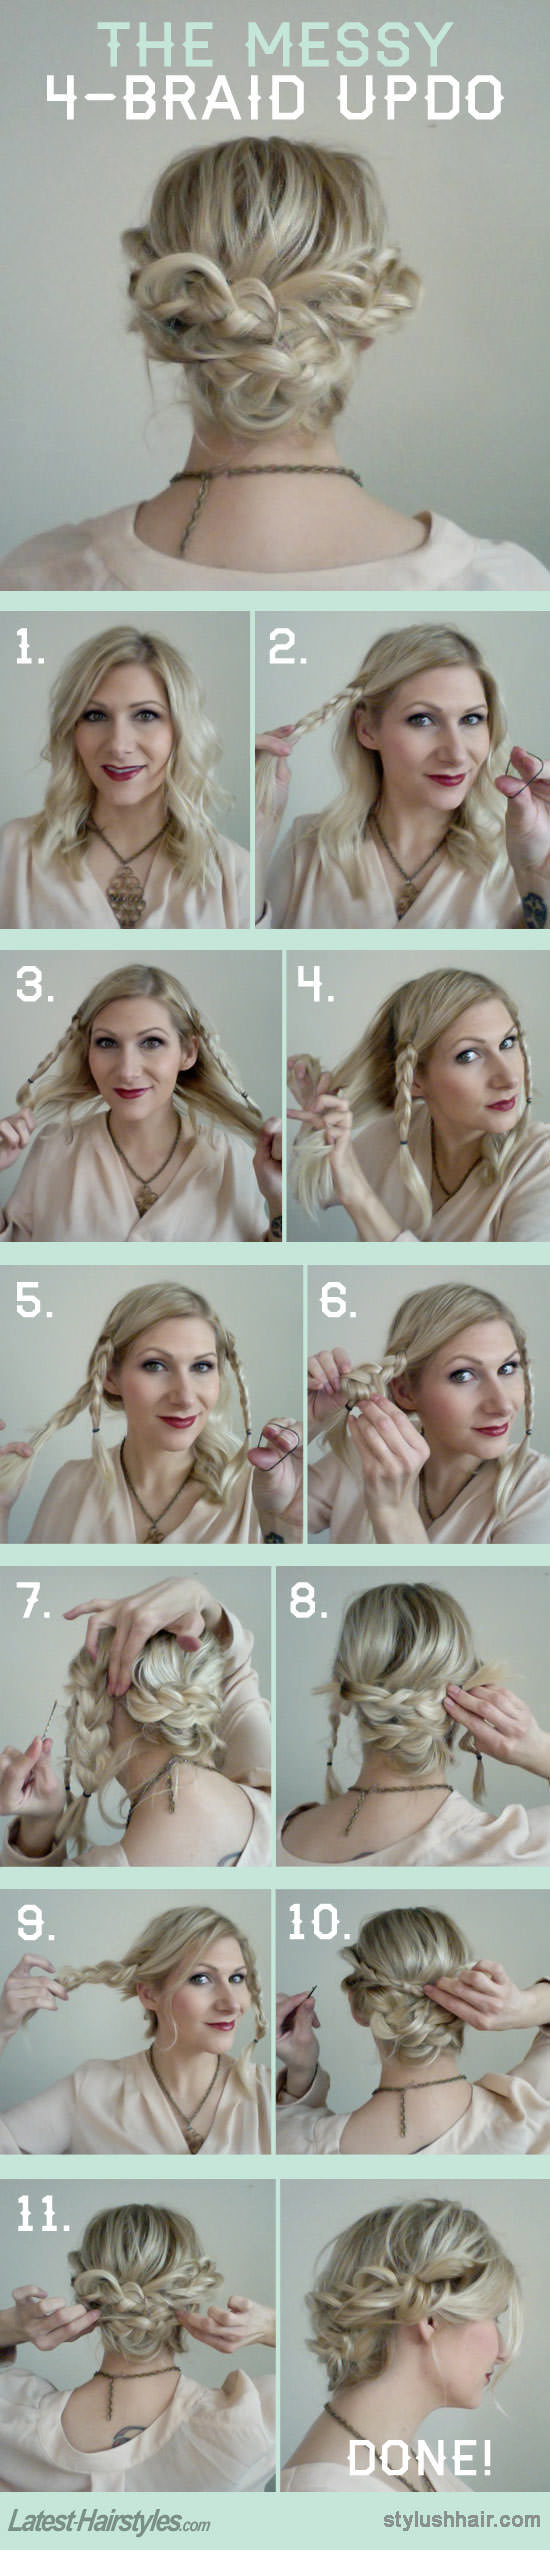 Updo hairstyle with four braids